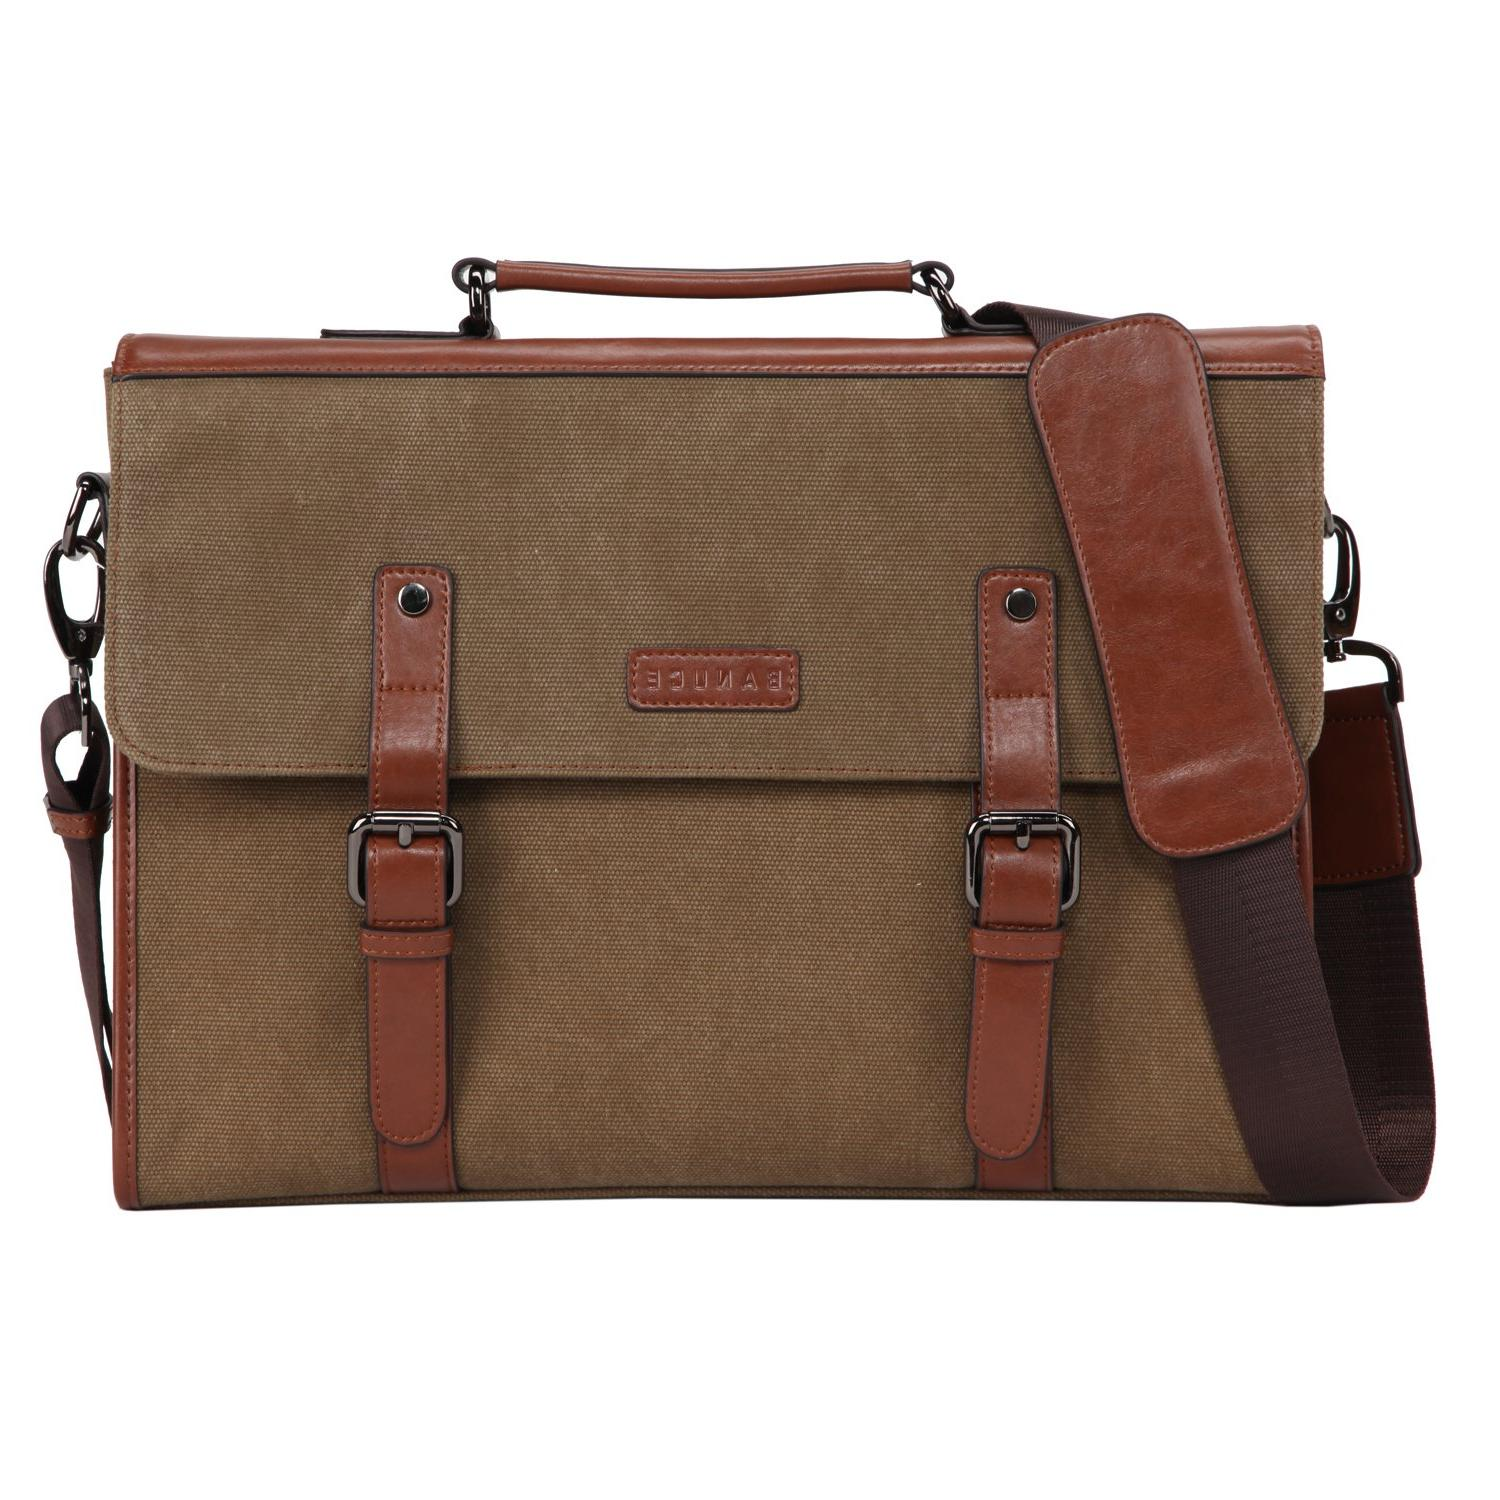 Banuce 13.3 inch Laptop Messenger Bag for Men Vintage Canvas